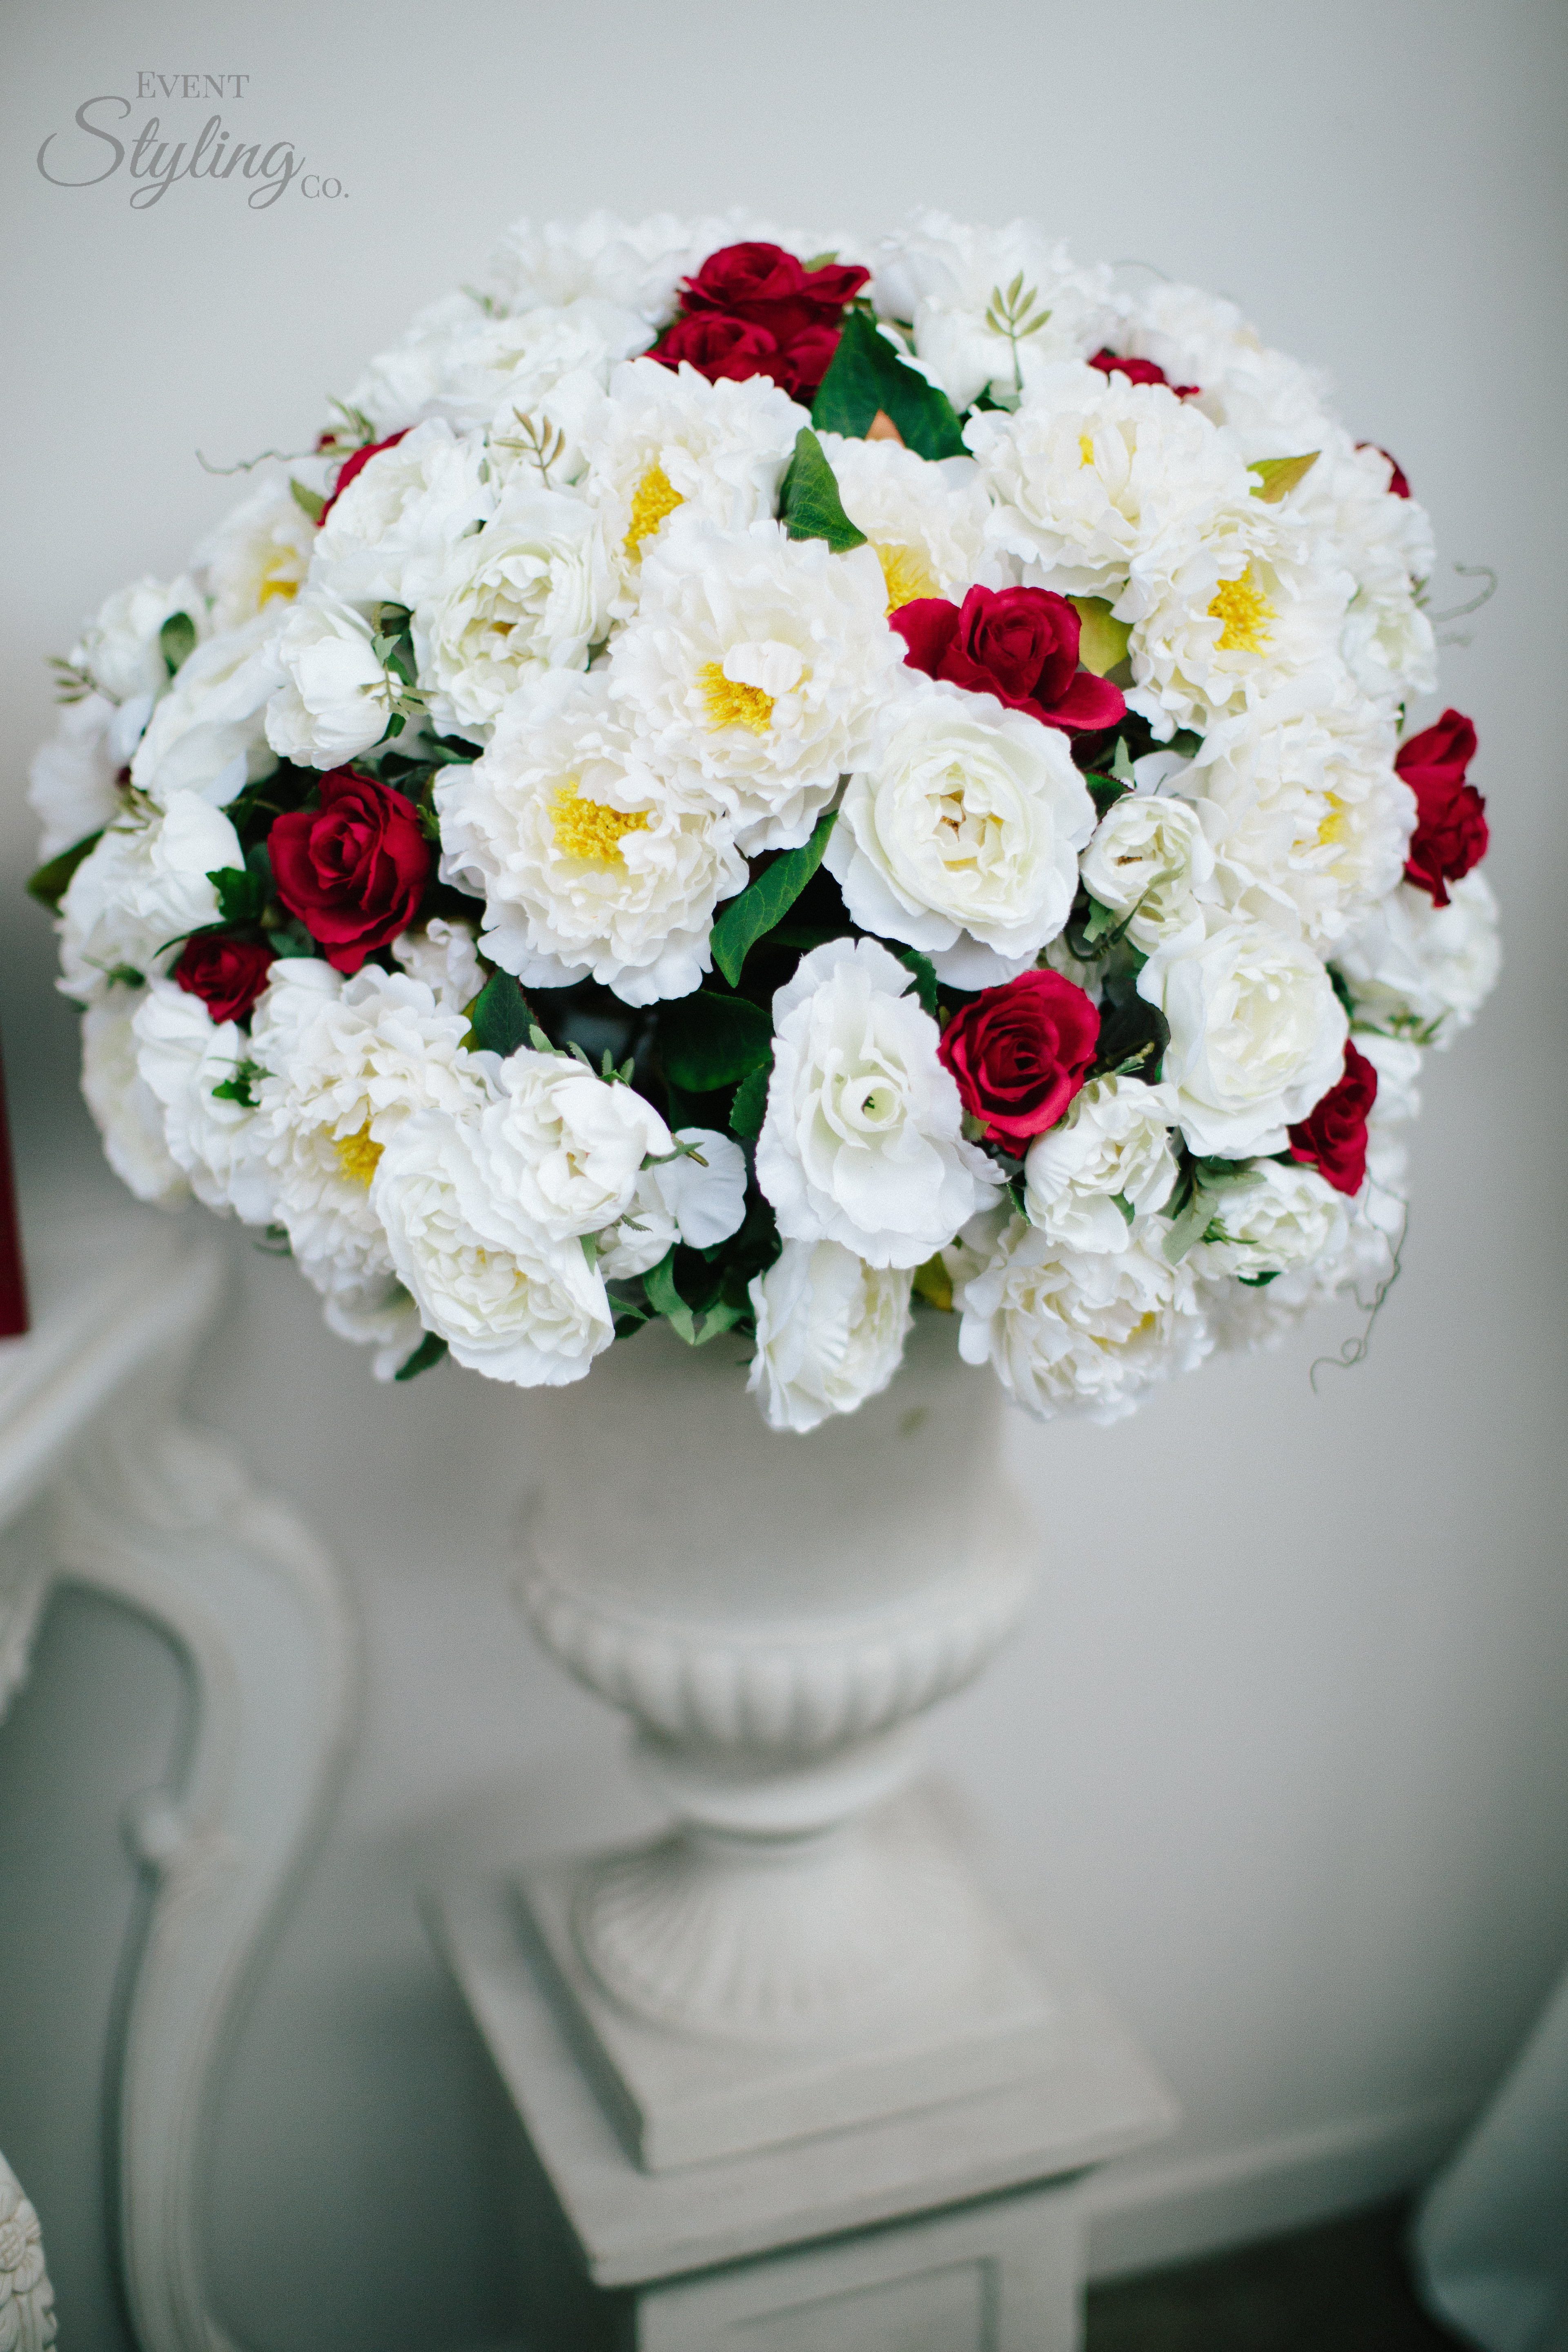 White wash urn with flowers